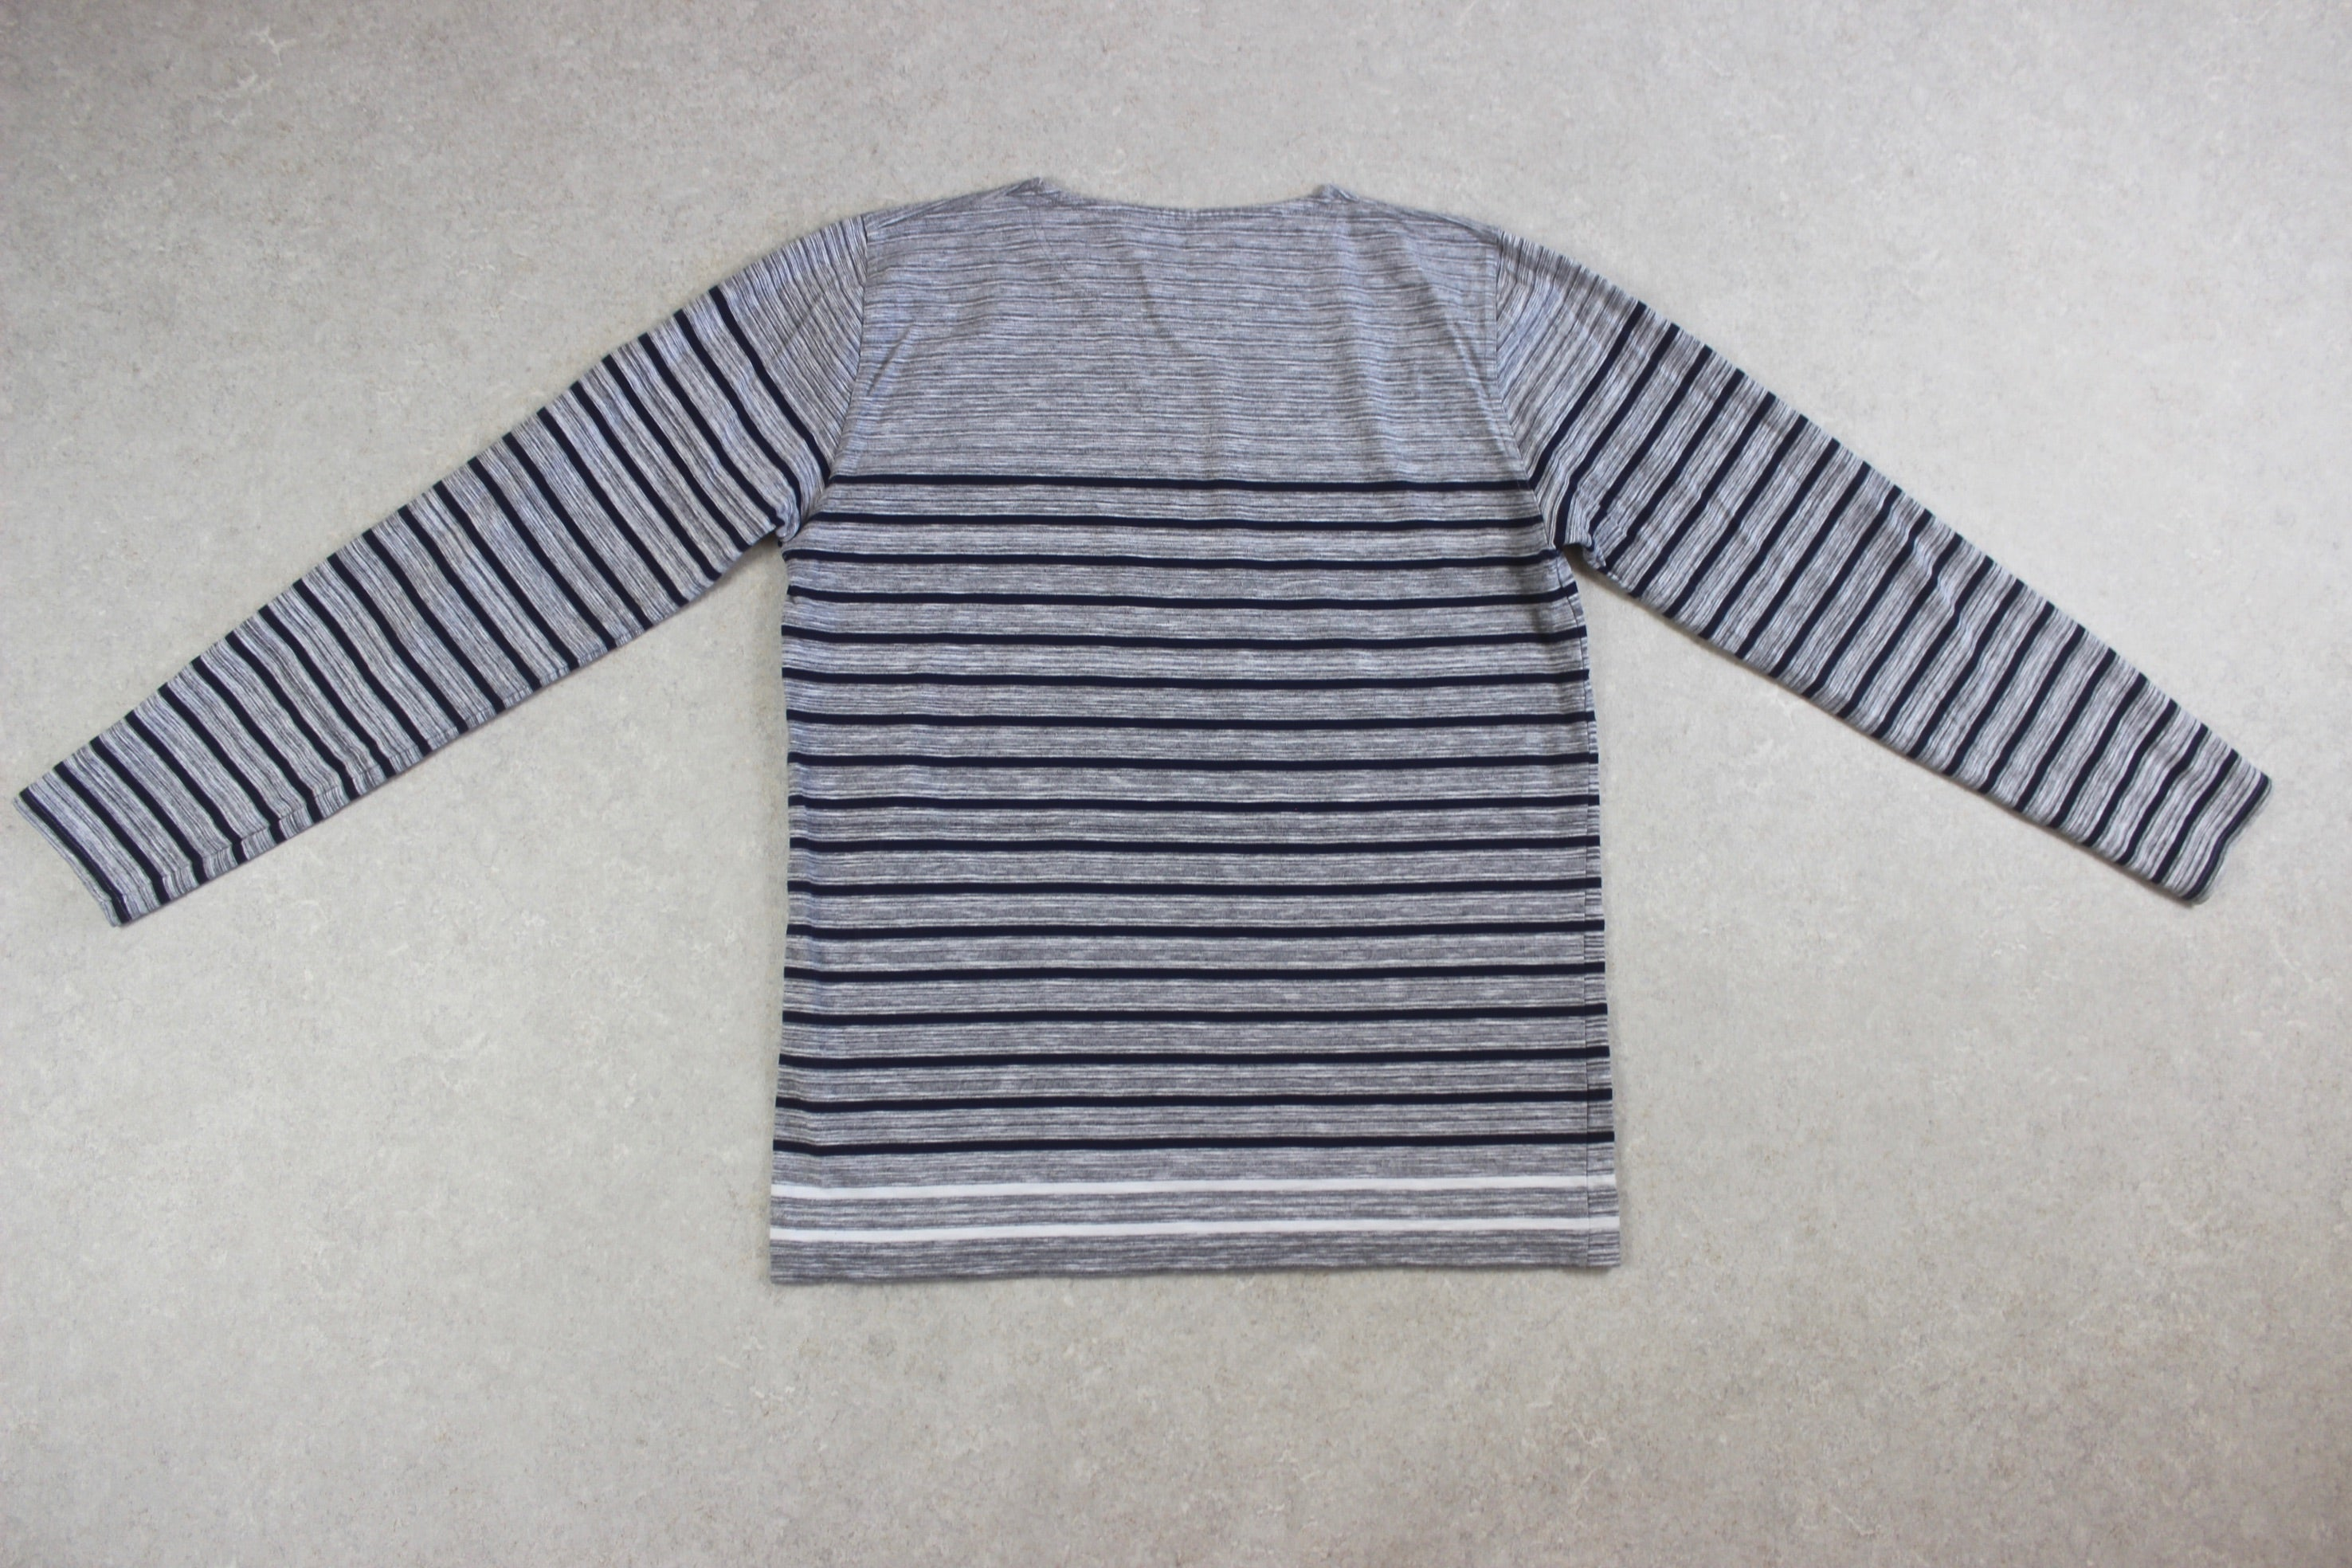 Norse Projects - Long Sleeve Stripe T Shirt - Grey/Navy Blue - Large